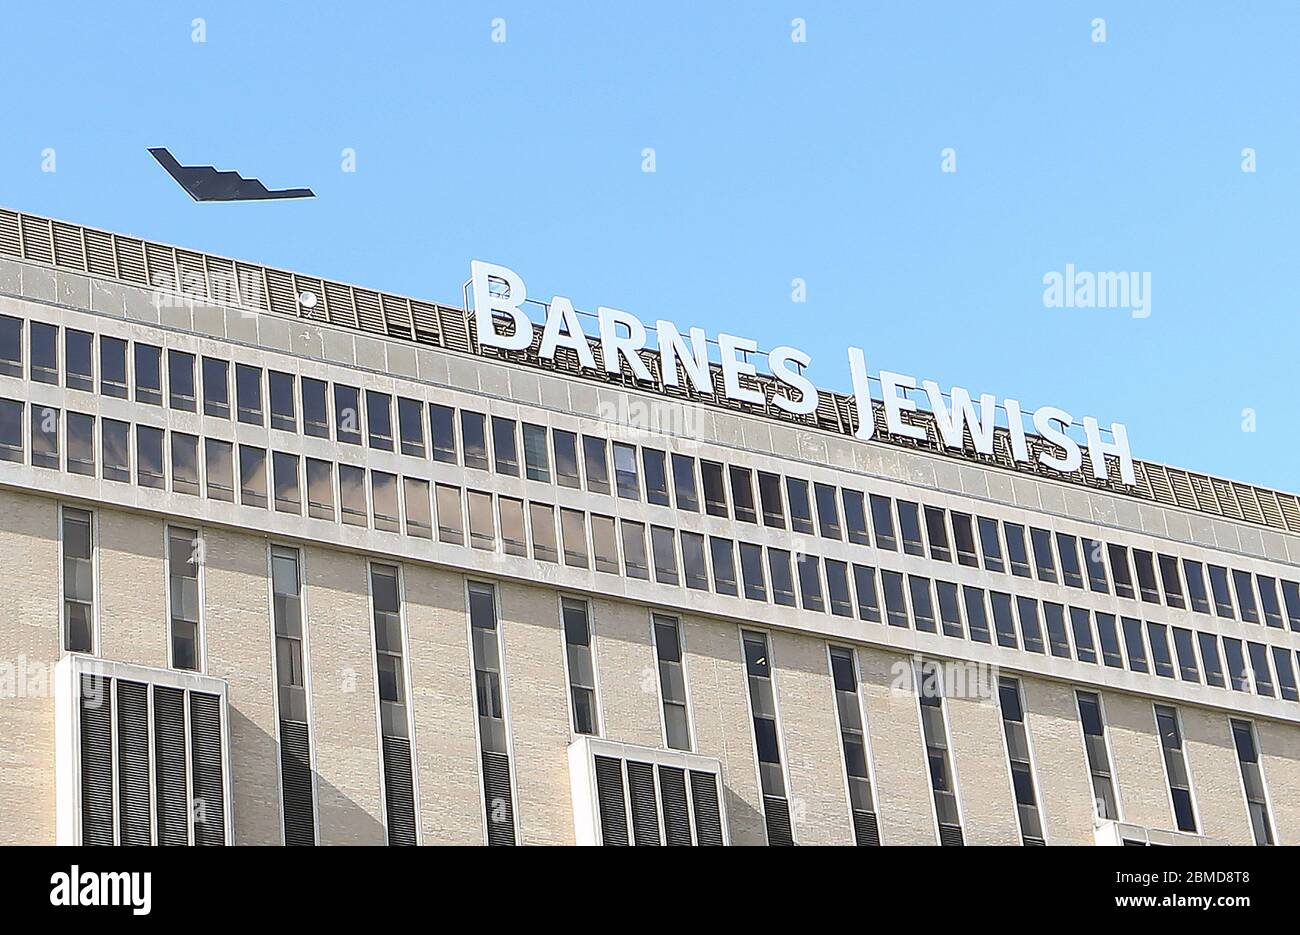 Bridgeton, United States. 08th May, 2020. A B-2 Spirit stealth bomber flys over Barnes-Jewish Hospital in St. Louis on Friday, May 8, 2020. The bomber, assigned 131st Bomb Wing, based at Whiteman Air Force Base, is flying over several hospitals throughout the State of Missouri as a salute to first responders and healthcare workers. Photo by Bill Greenblatt/UPI Credit: UPI/Alamy Live News Stock Photo